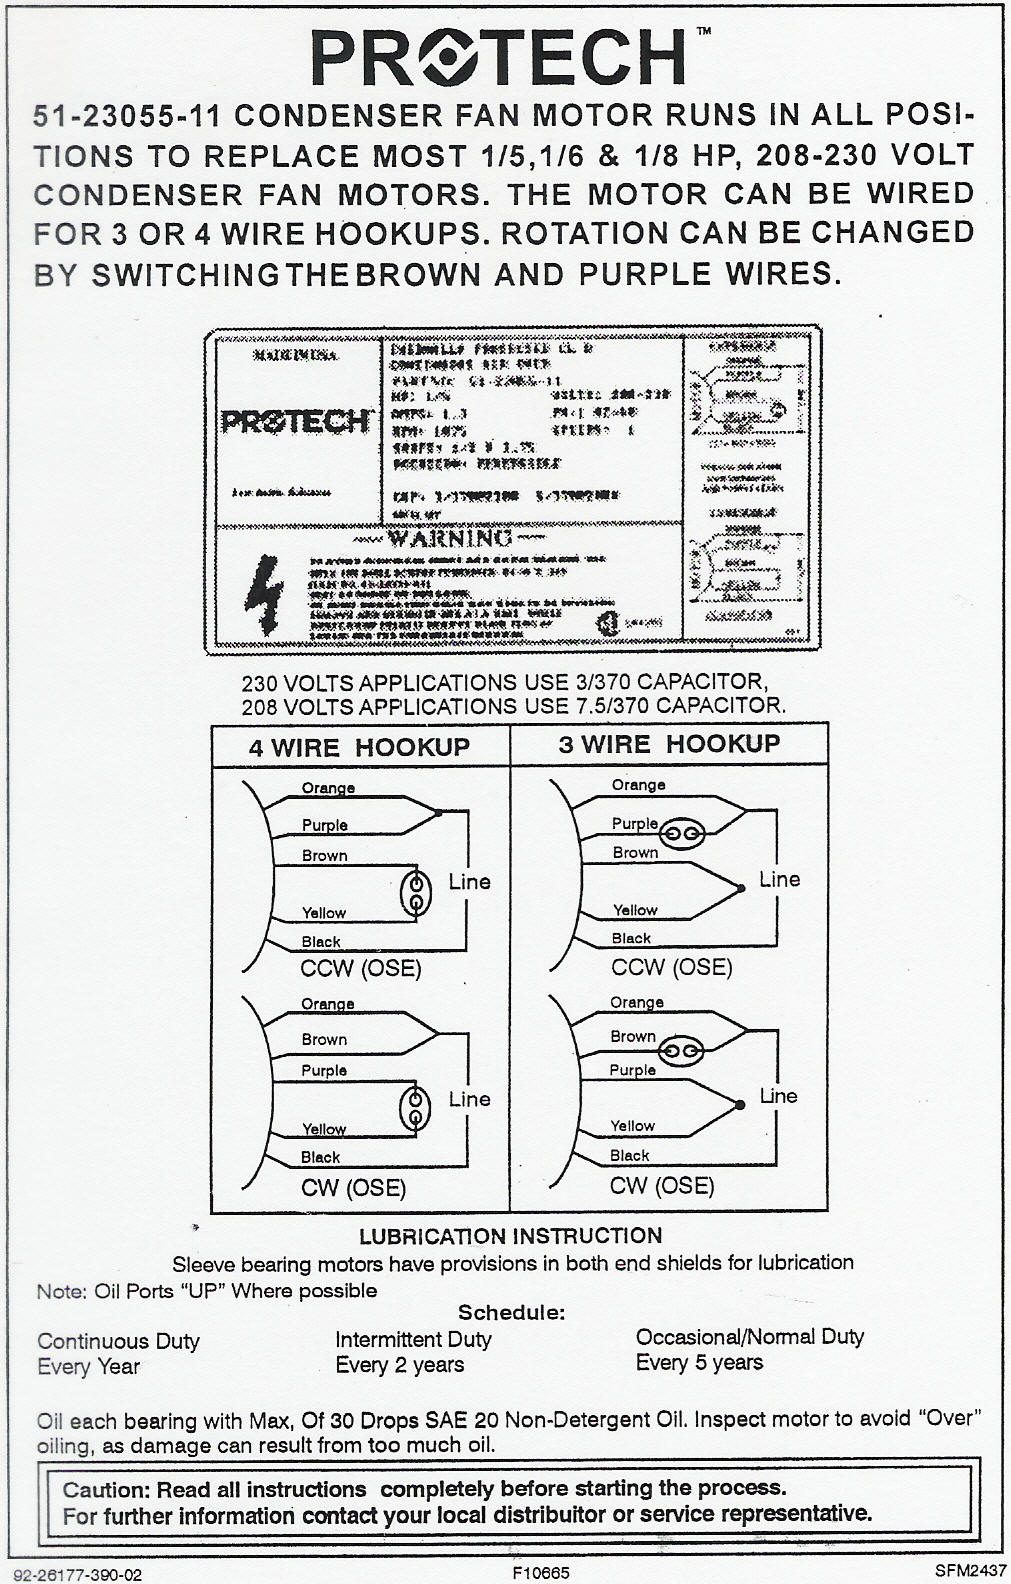 51 23055 11 wiring diagram rheem ruud condenser fan motor 51 23055 11 wiring diagram rheem manuals wiring diagrams at mifinder.co